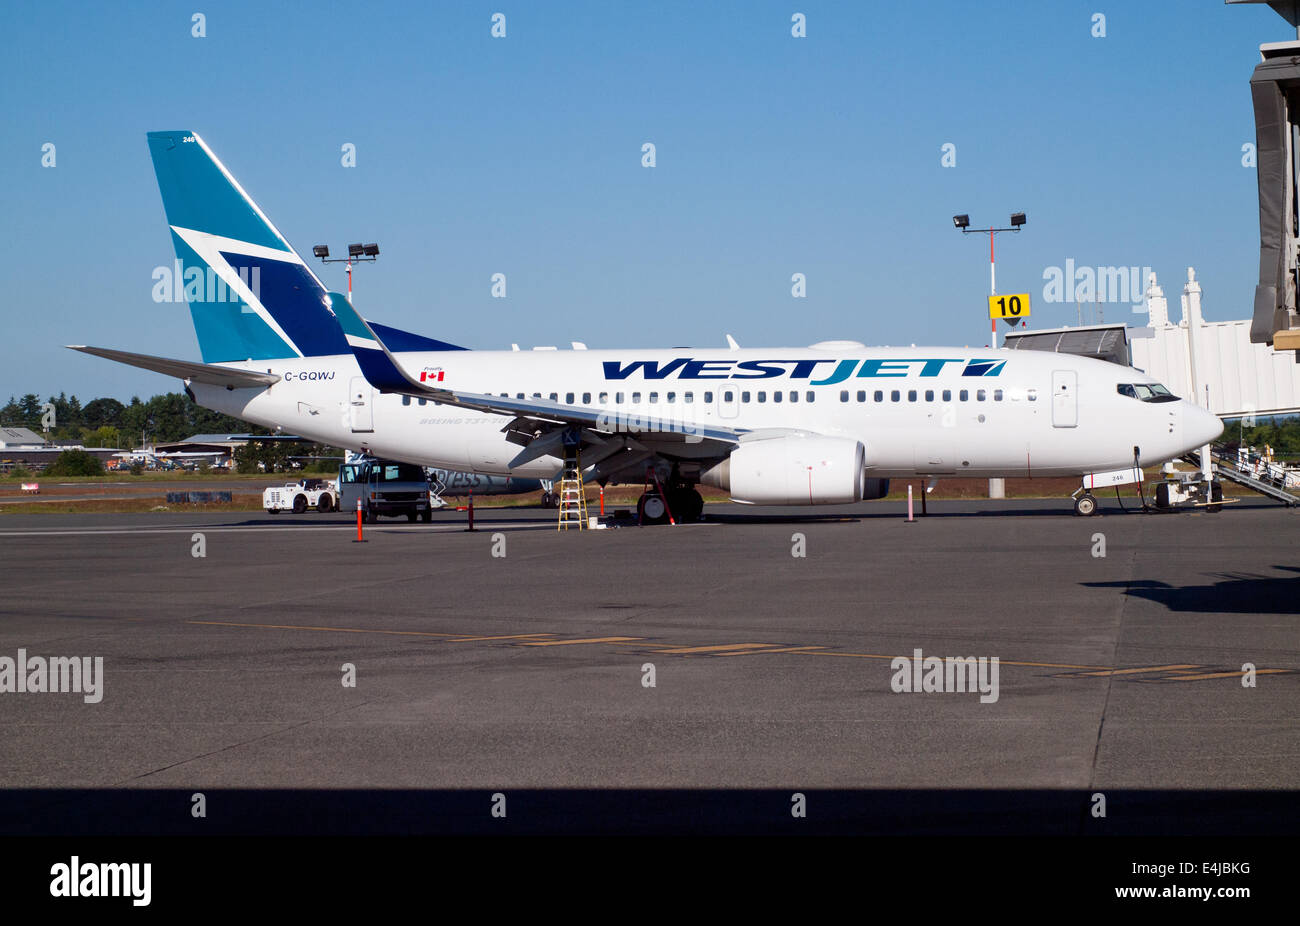 A WestJet Airlines Boeing 737-700 parked on the tarmac at Victoria International Airport (YYJ) in Sidney, BC, Canada. - Stock Image